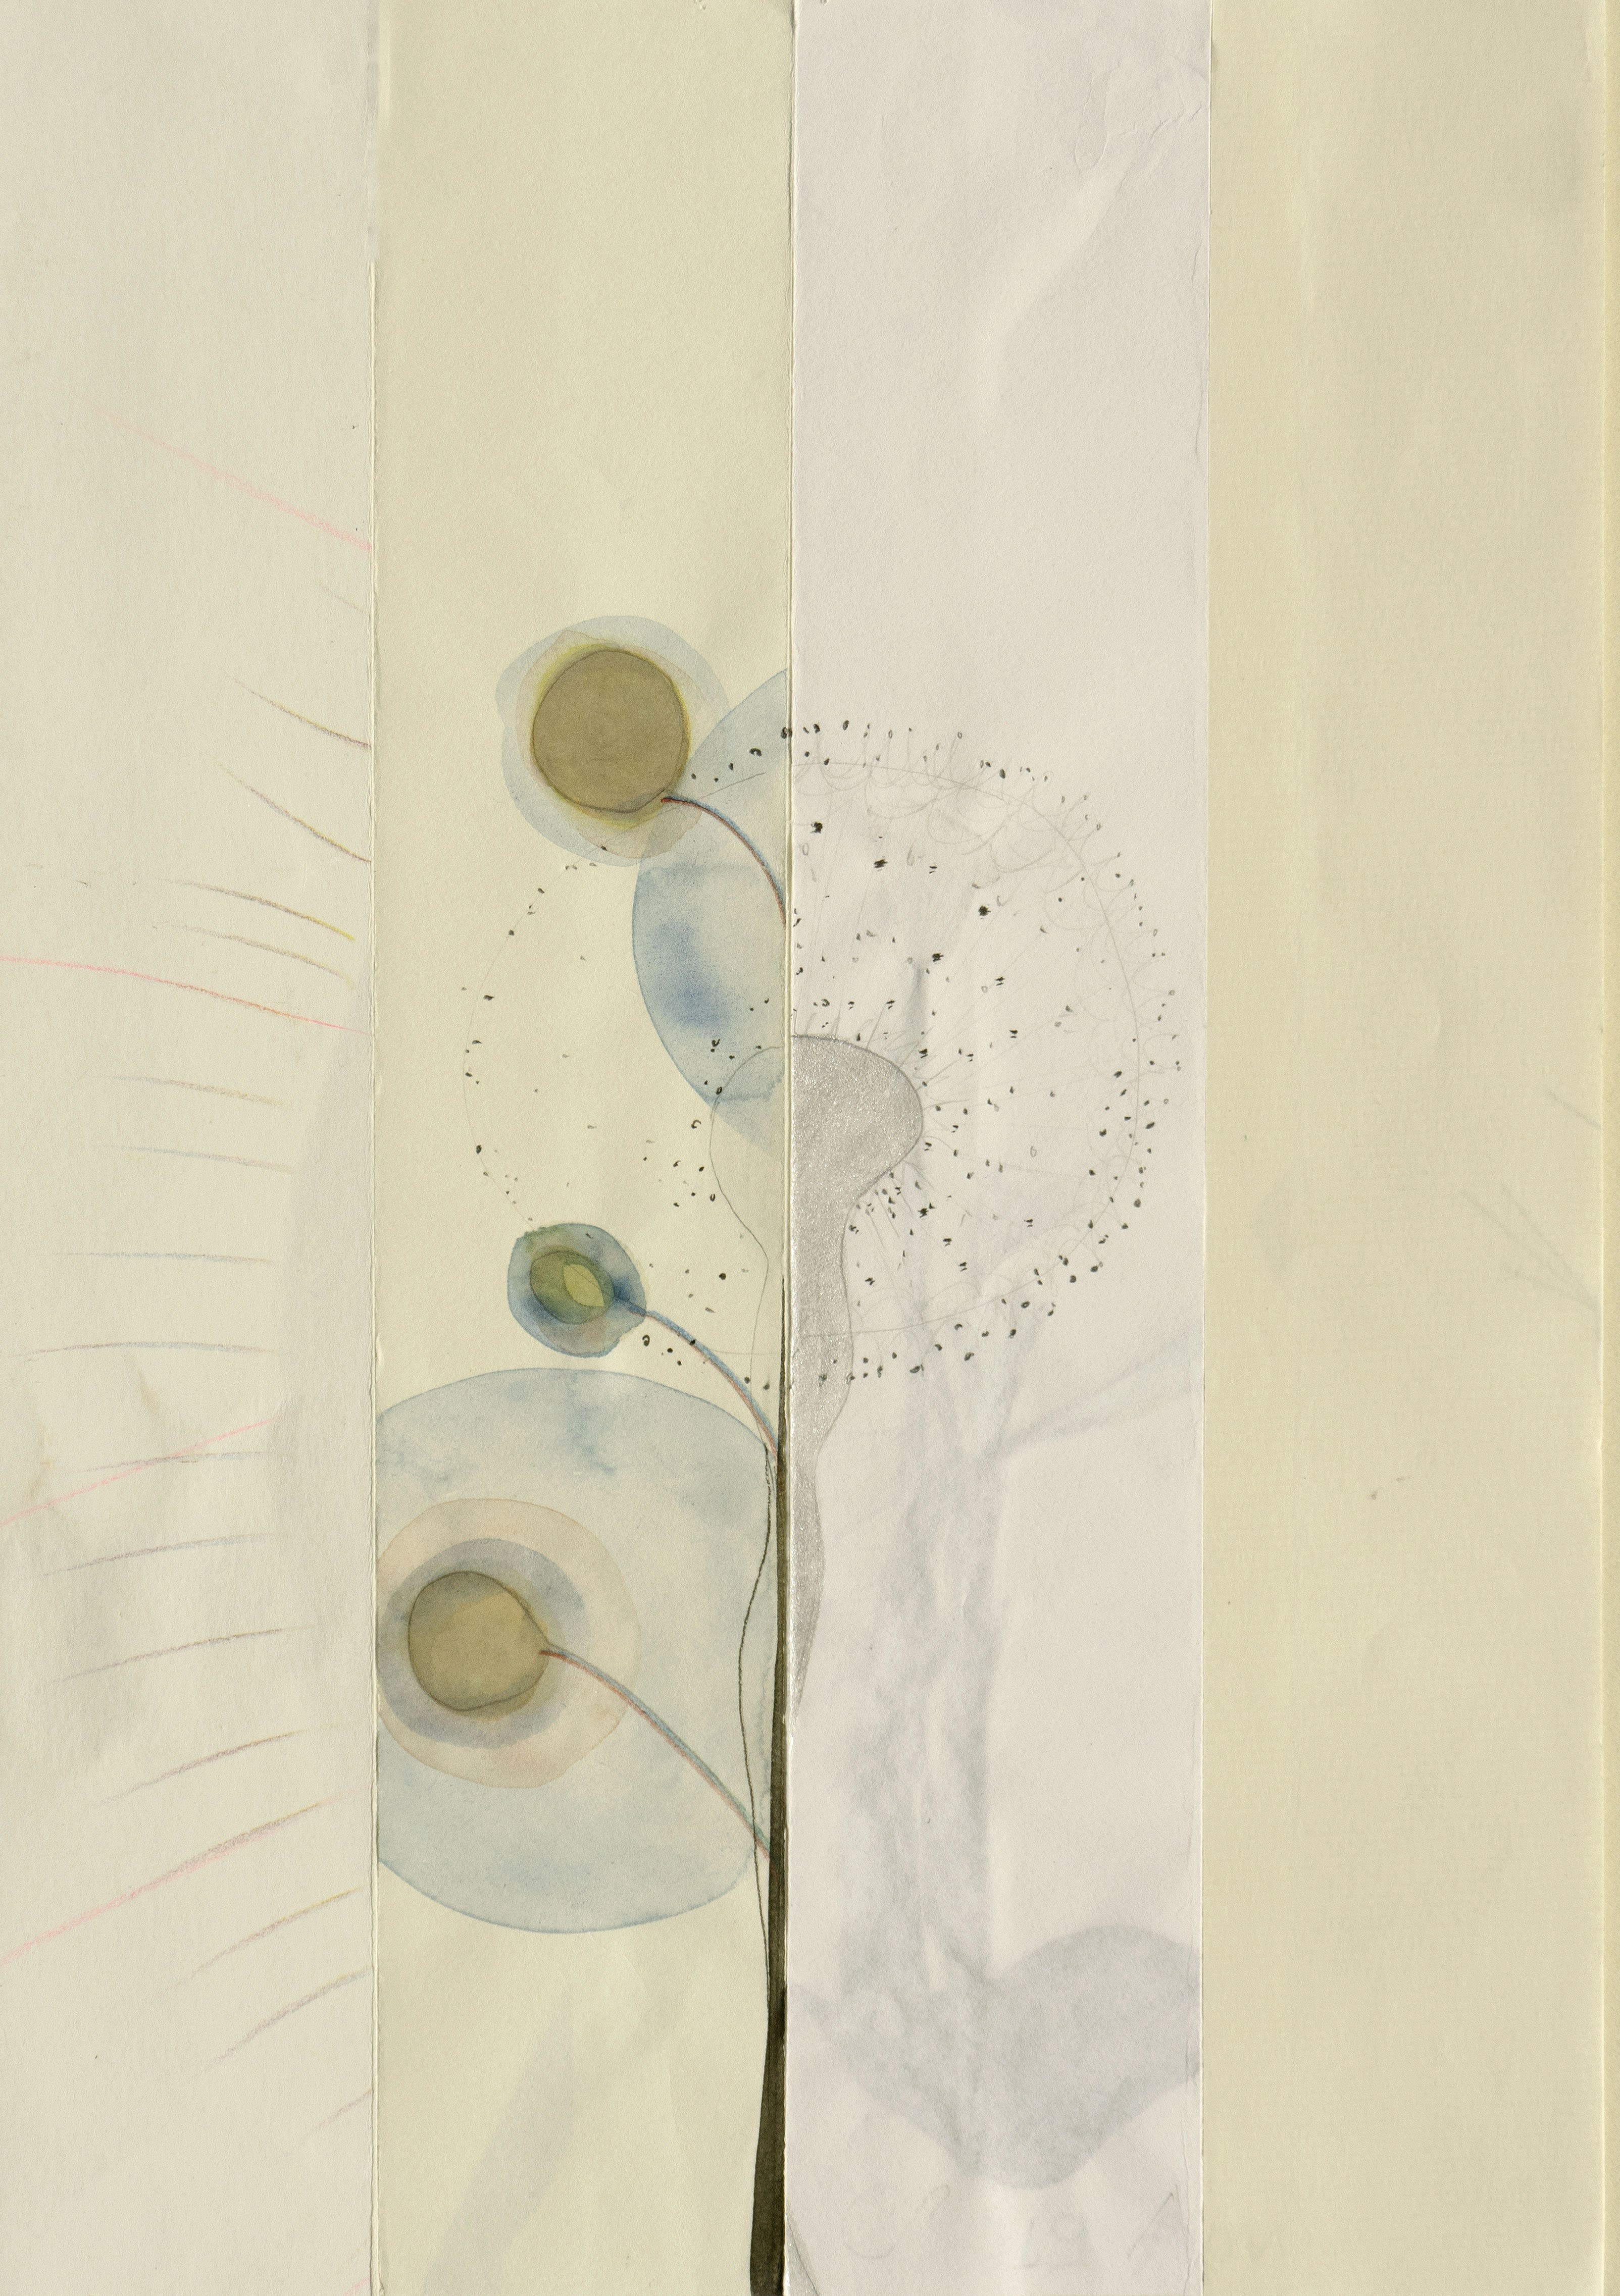 Mireille Gros, Seasons 14, pencil and watercolor on paper, online exhibition